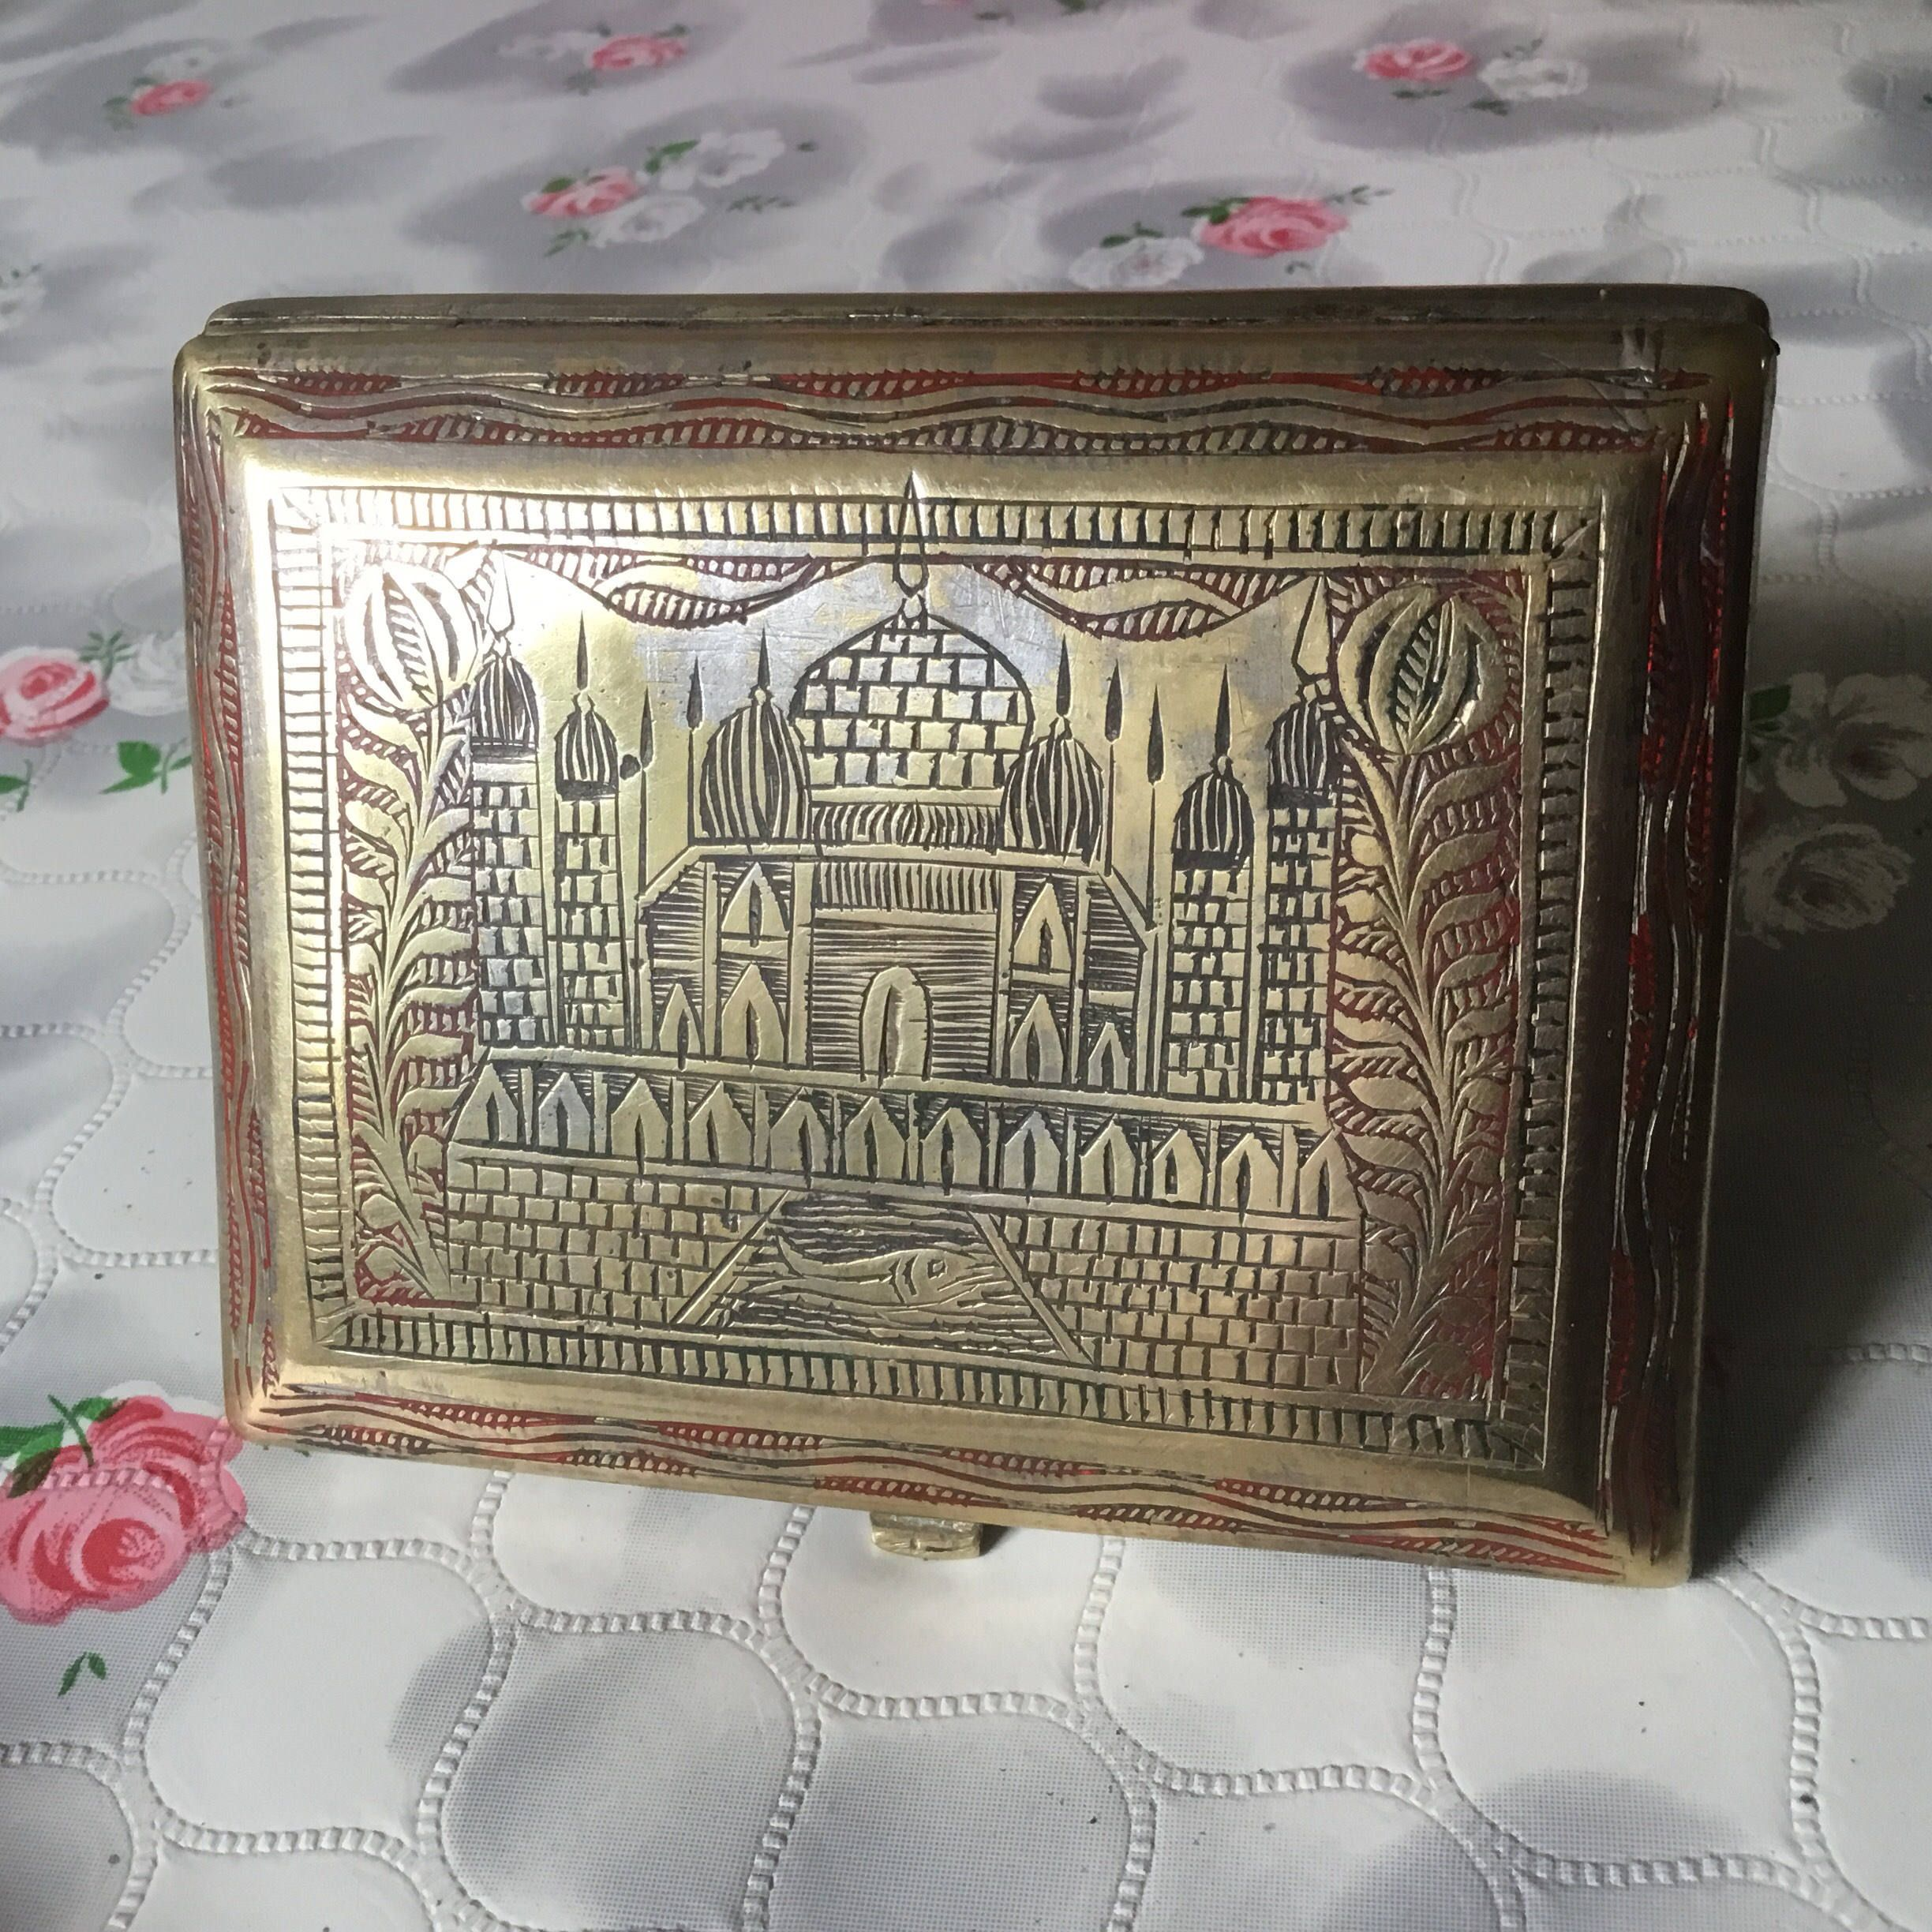 Vintage cigarette case hand engraved cigarette case taj mahal vintage cigarette case hand engraved cigarette case taj mahal souvenir cigarette case vintage colourmoves